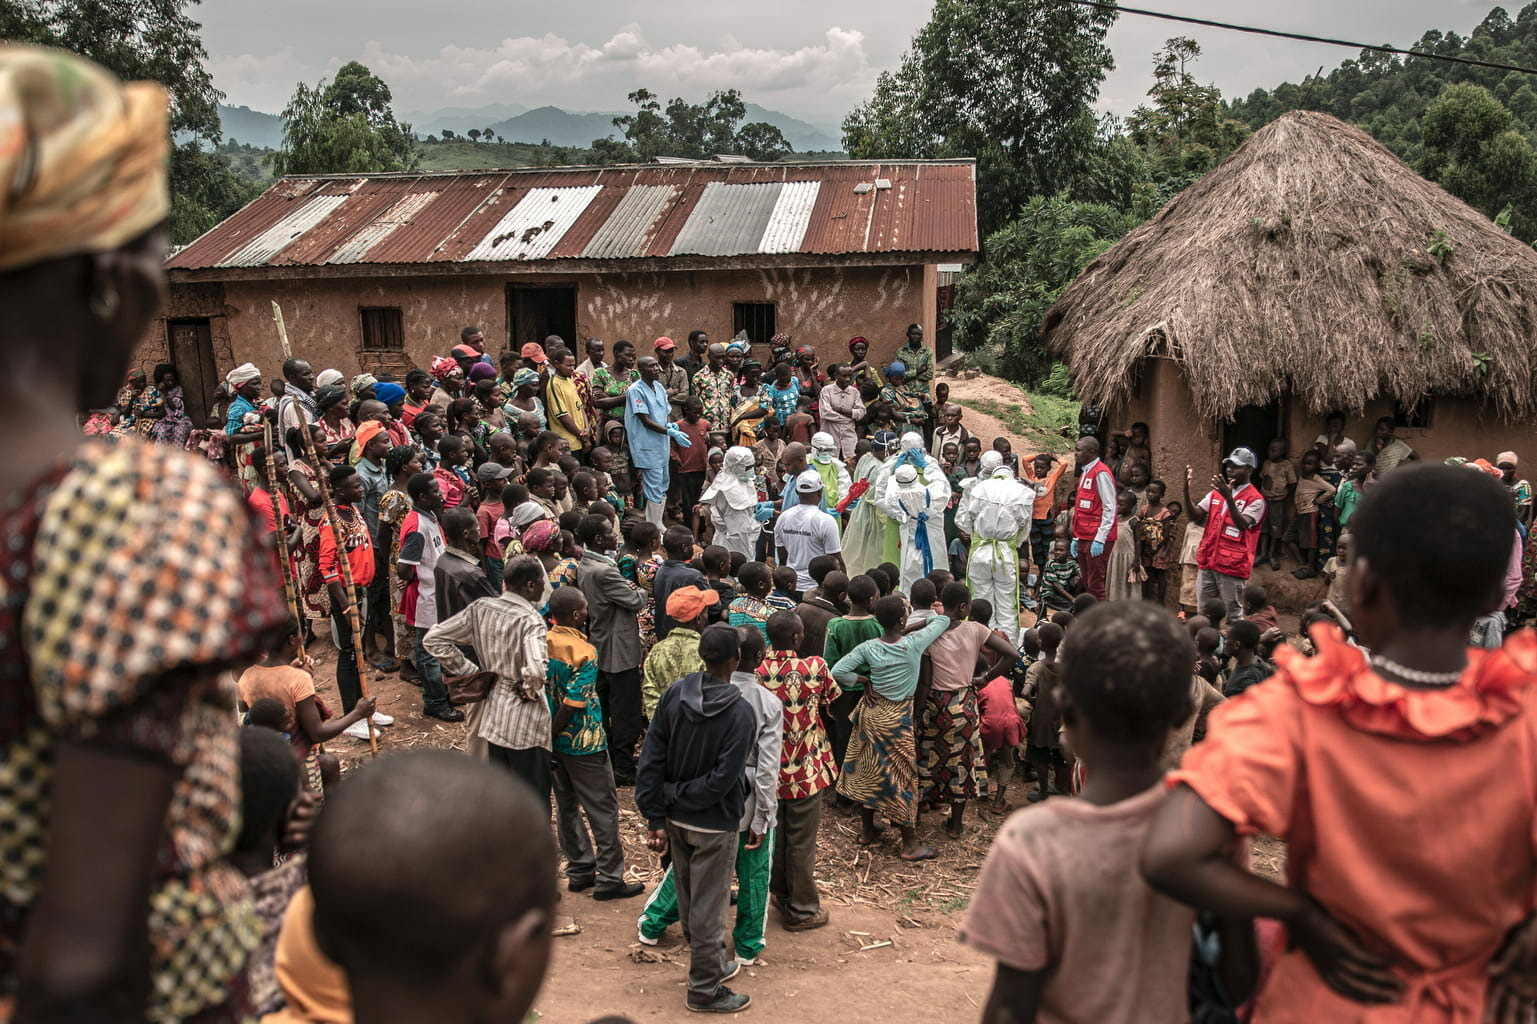 Rutshuru, North Kivu Province, February 2020. Neighbors and Red Cross burial workers dressed in protective clothing gather outside a family home in Rutshuru, where an 11-month-old girl died during the Ebola outbreak. © Finbarr O'Reilly for Fondation Carmignac